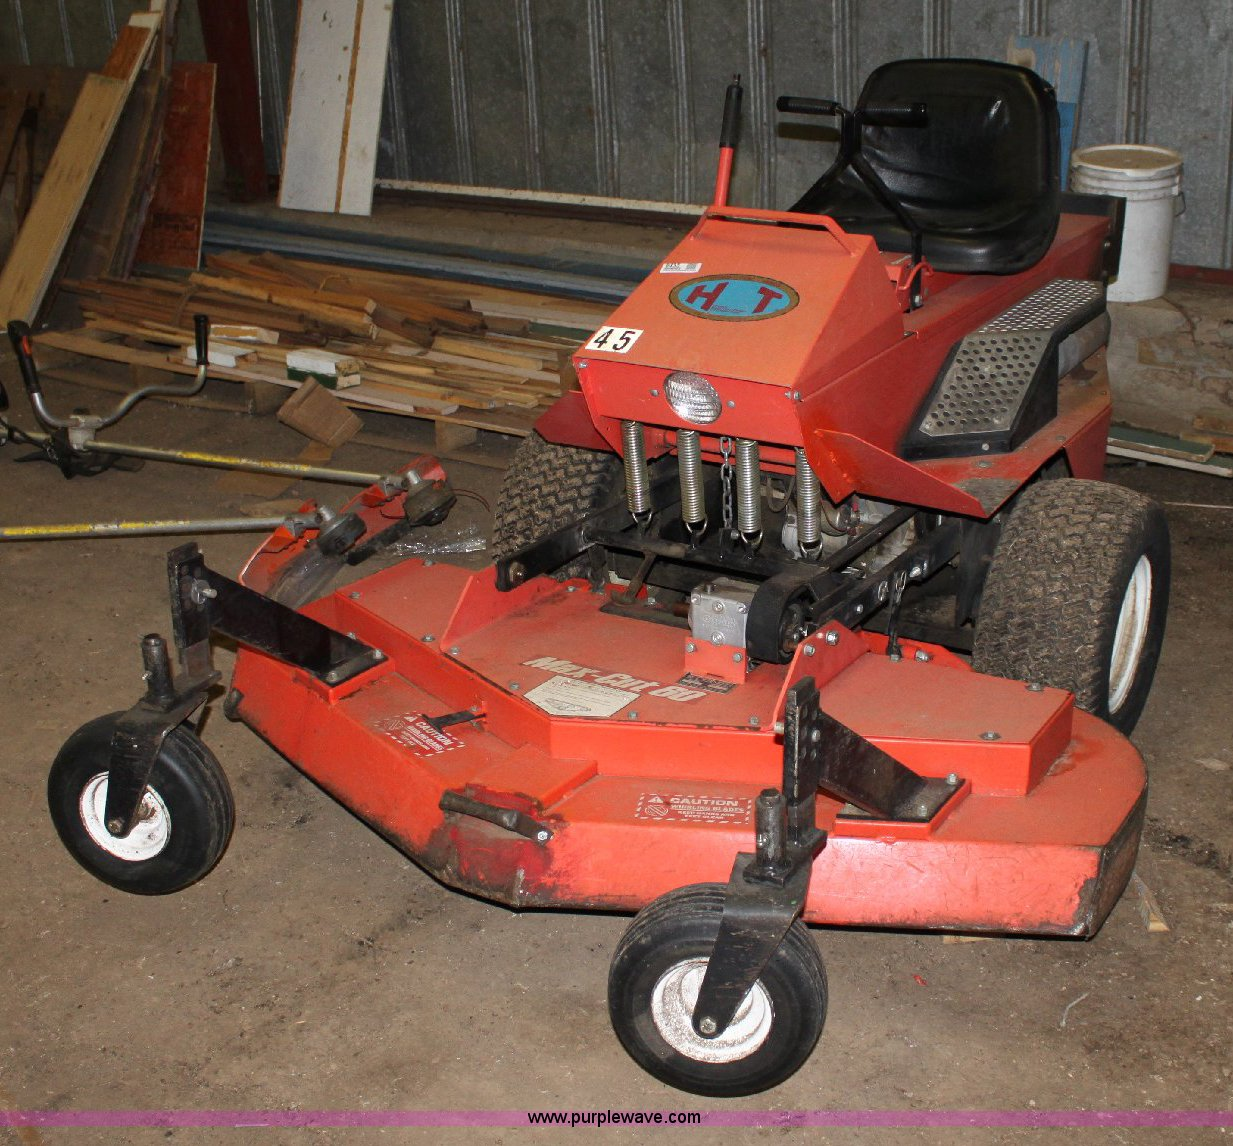 deines dd 18ht riding lawn mower item 6435 sold june 14 rh purplewave com deines mower parts deines mower manual